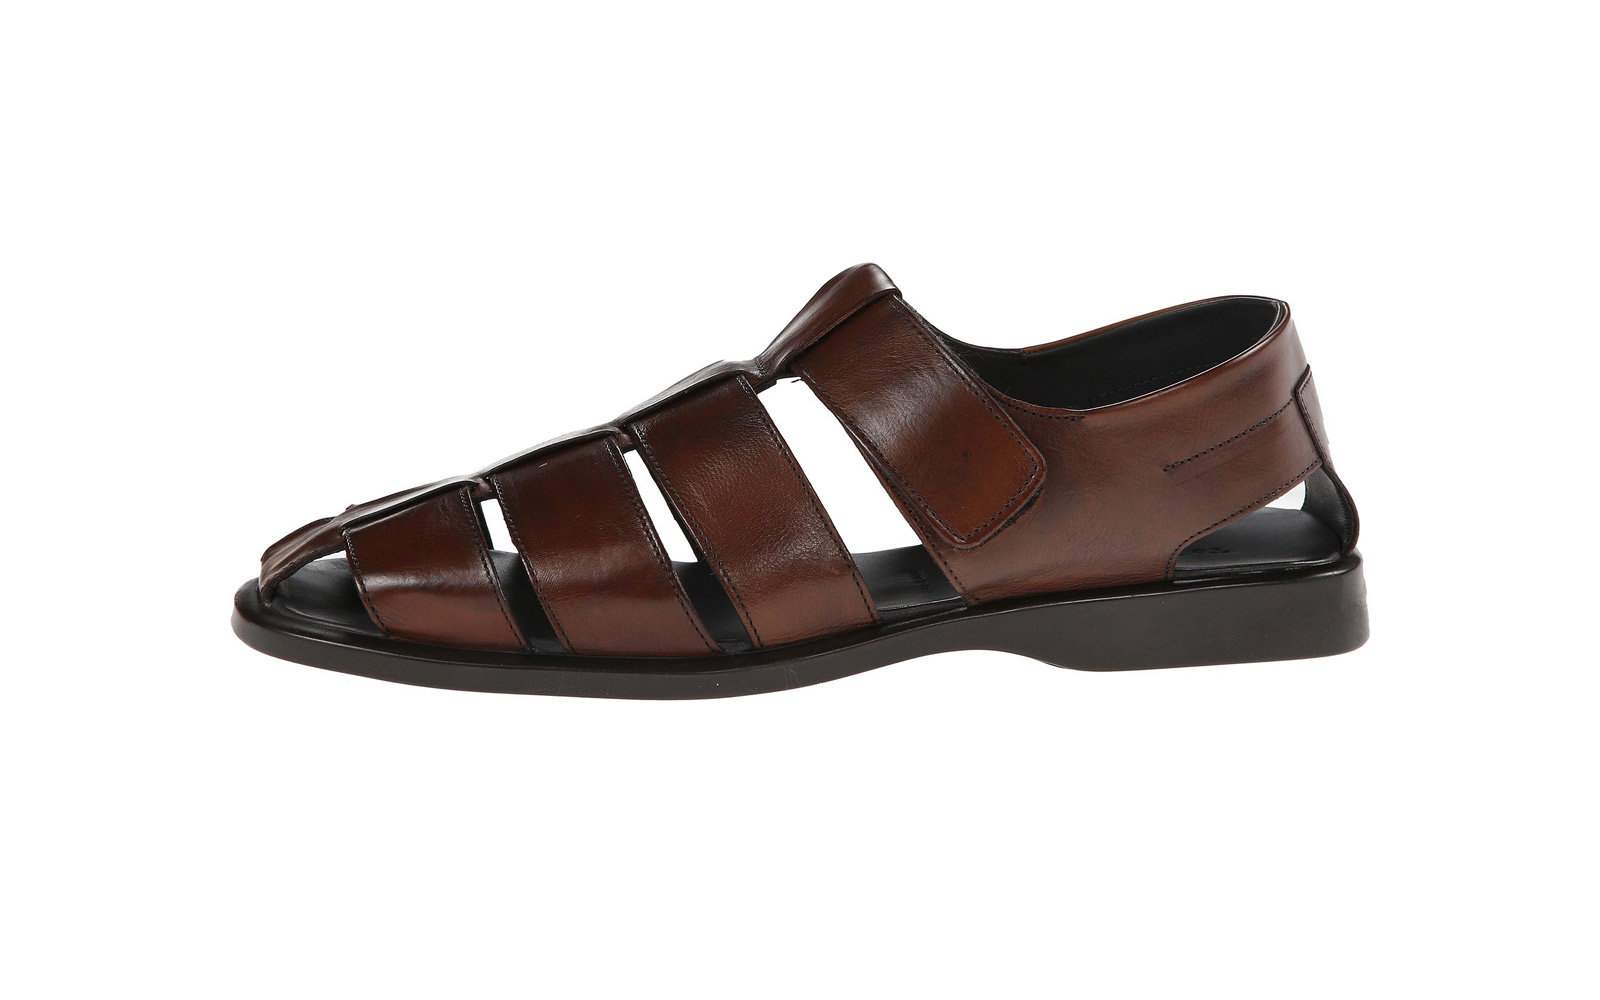 fast color exquisite design innovative design The Best Men's Sandals to Pack for Your Next Vacation ...